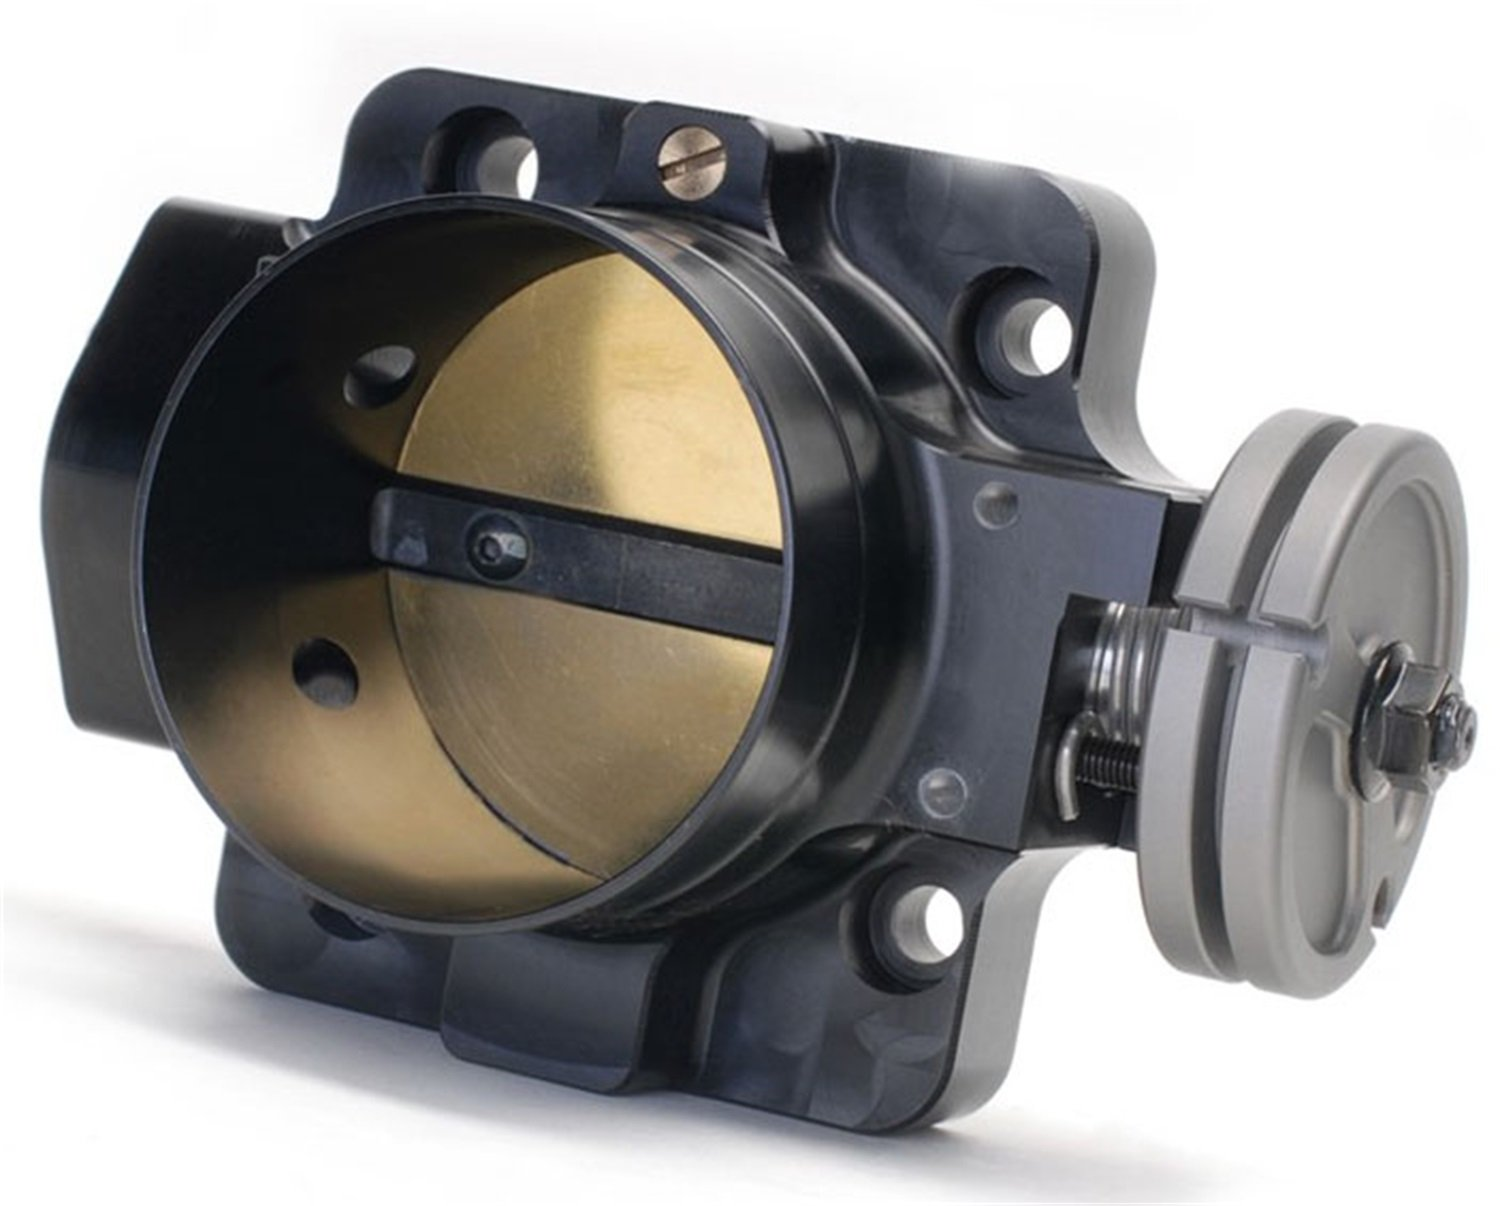 Skunk2 309-05-0055 Pro Series Black Anodized 70mm Throttle Body for Honda B, D, H, F-Series Engines